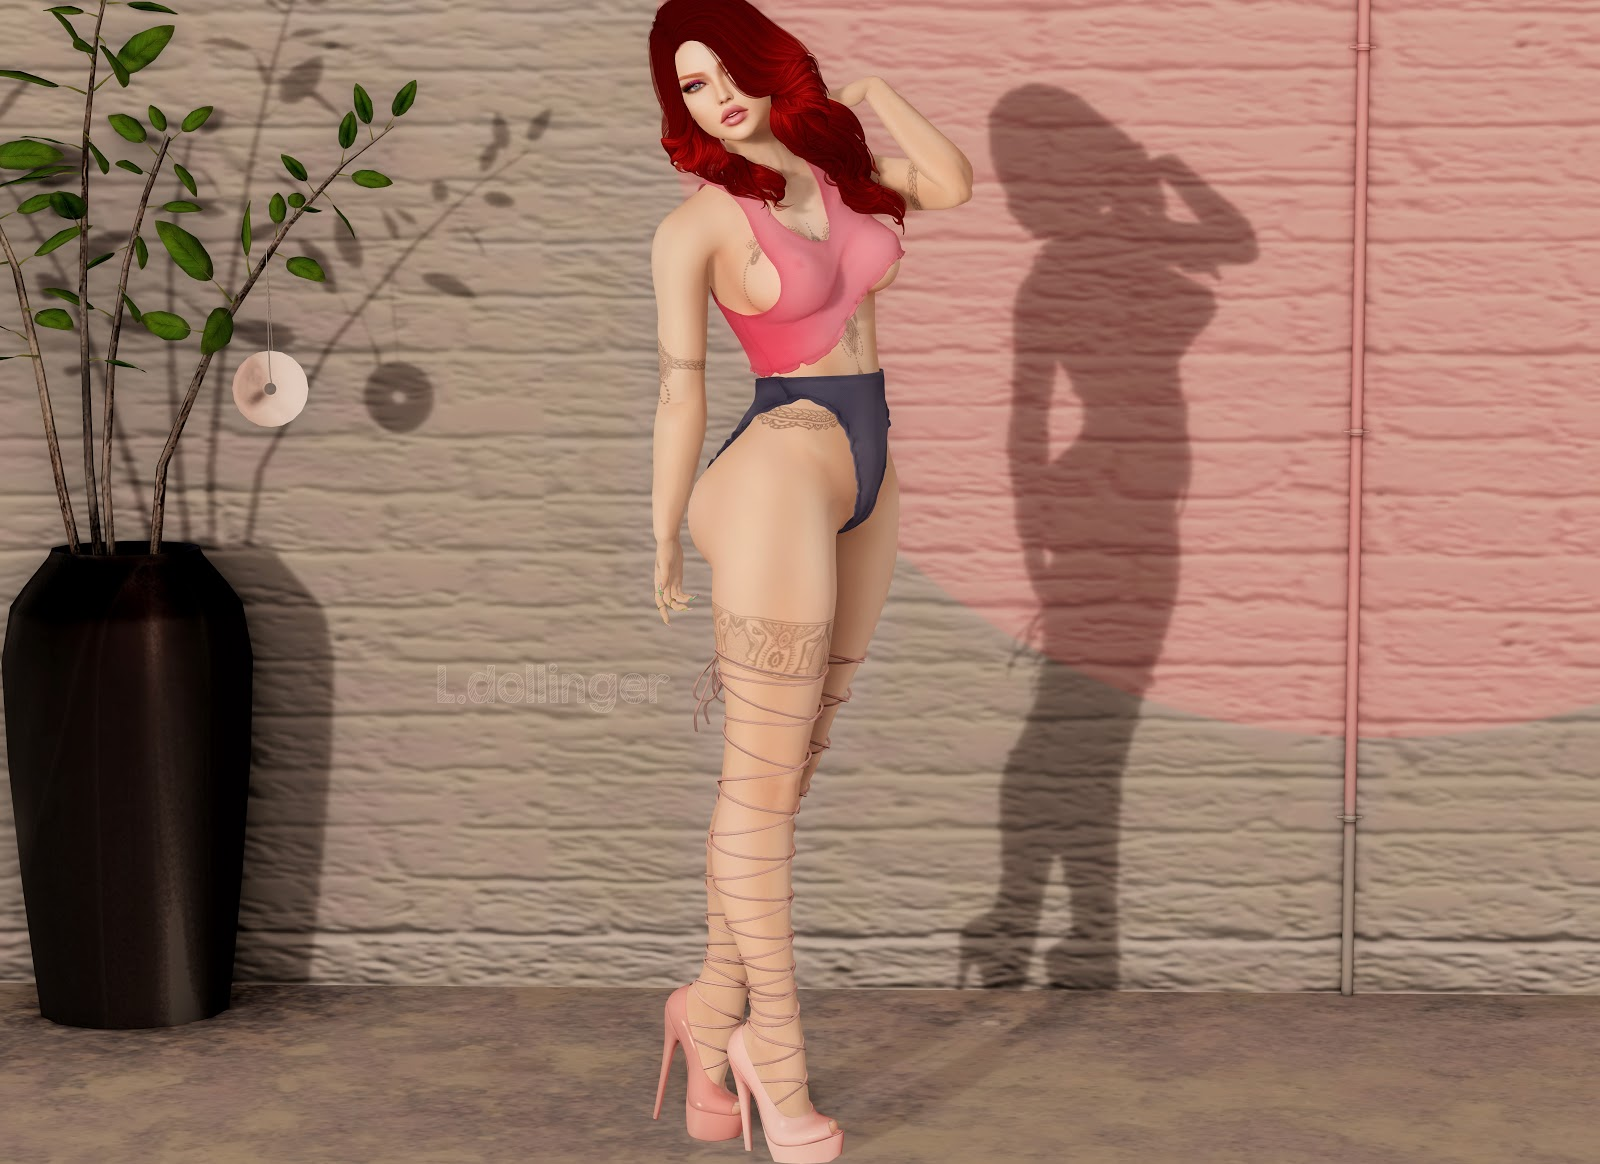 https://www.flickr.com/photos/itdollz/34800729434/in/photostream/lightbox/